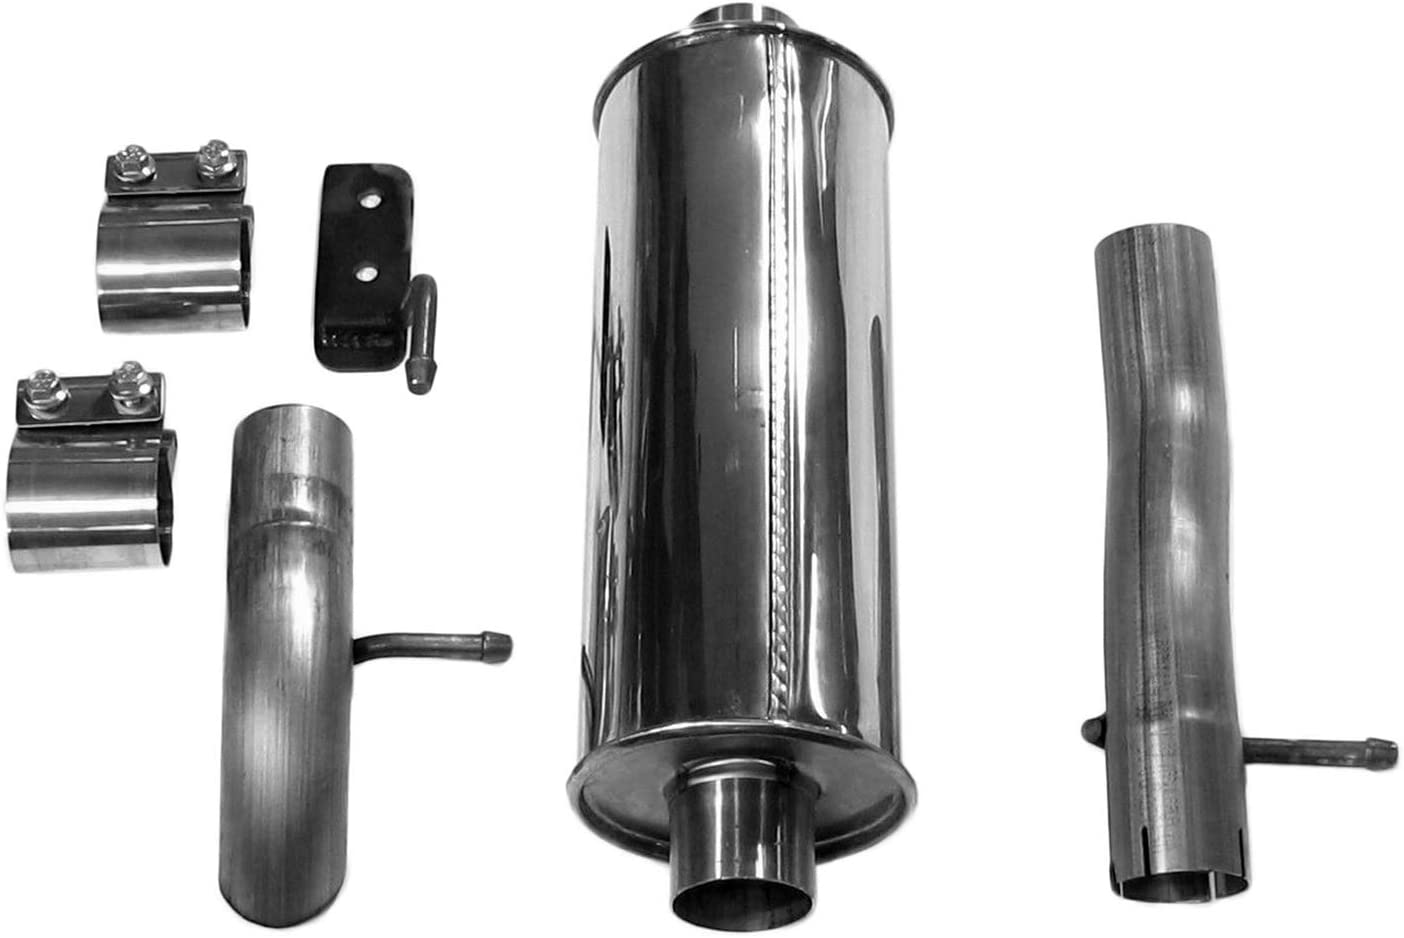 Dynomax 39522 Ultra Flo Polished Stainless Steel Cat-Back Single Exhaust System